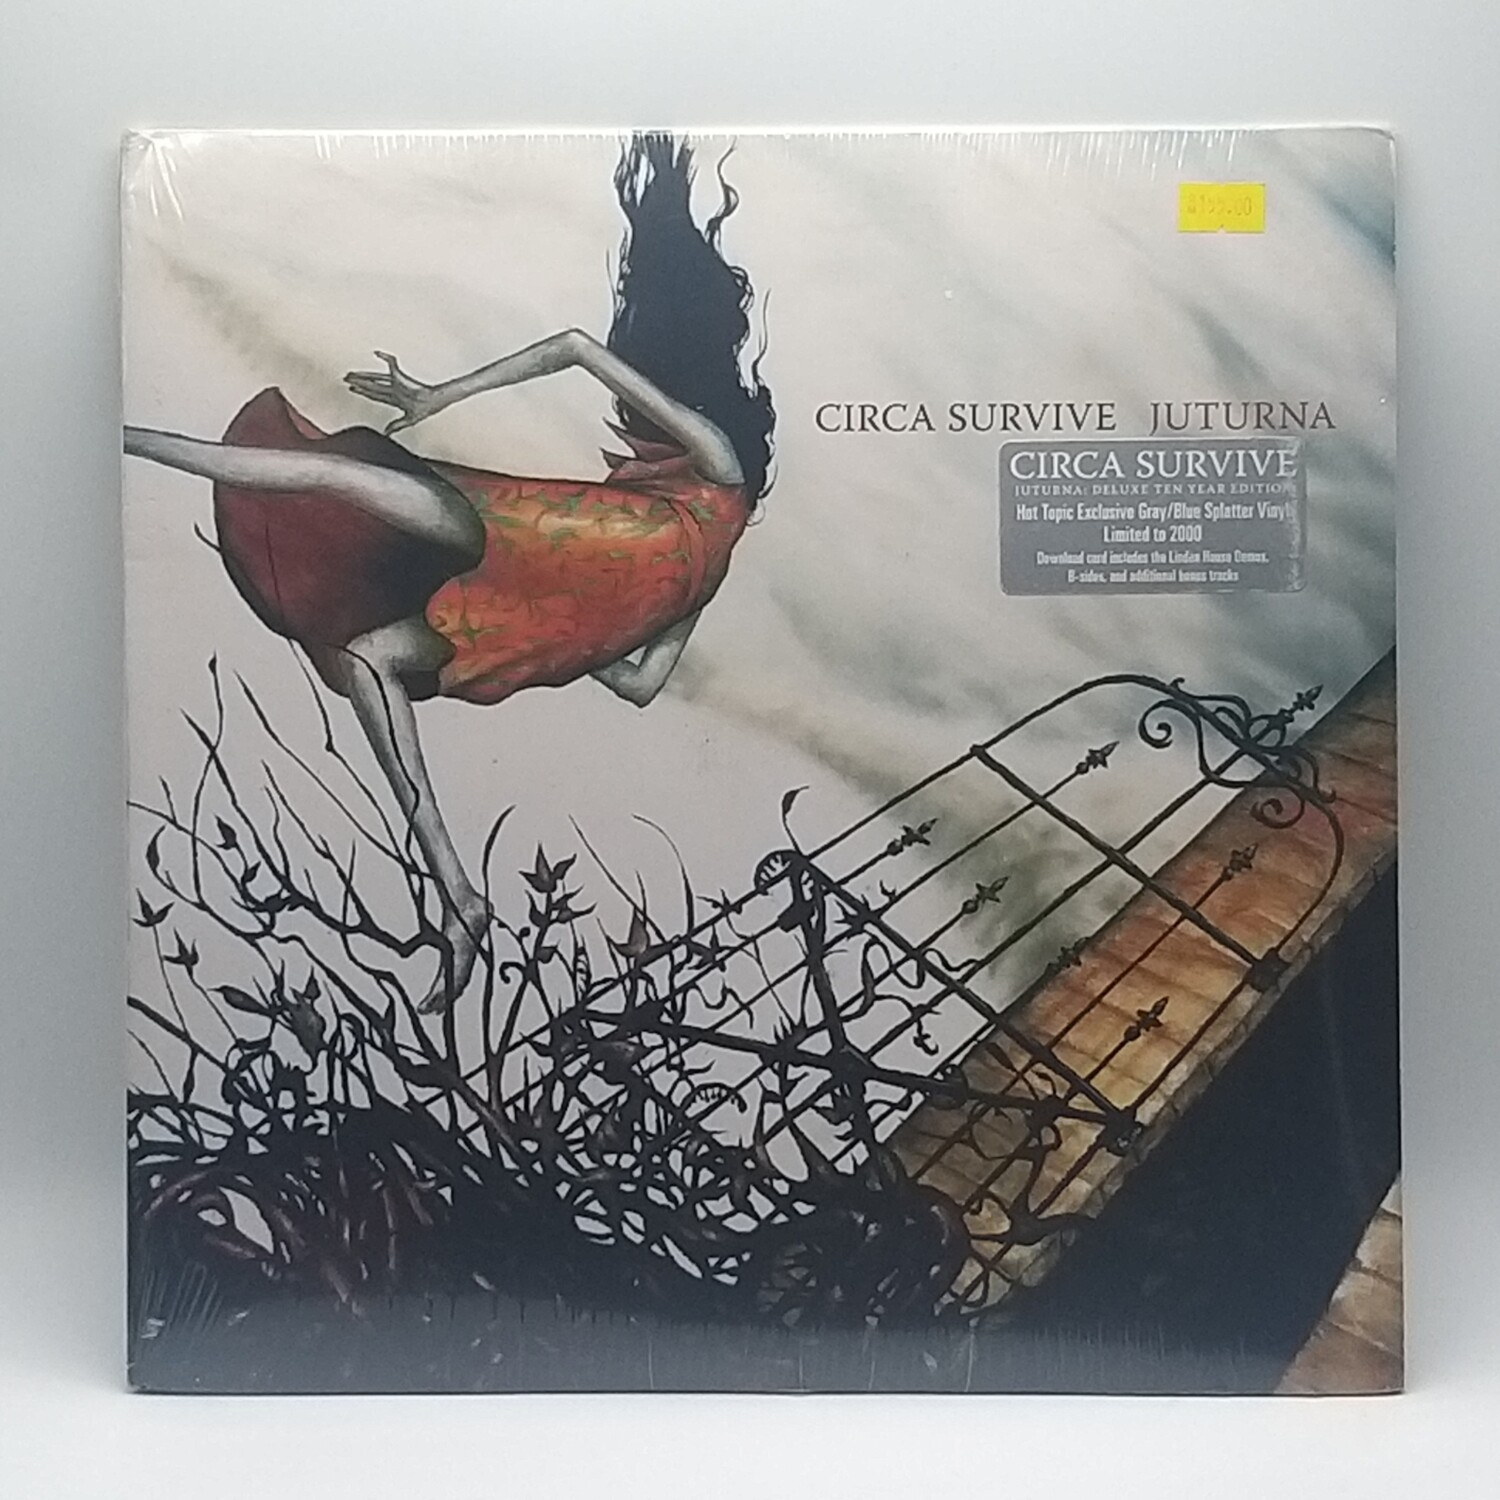 CIRCA SURVIVE -JUTURNA- LP (COLOR VINYL)